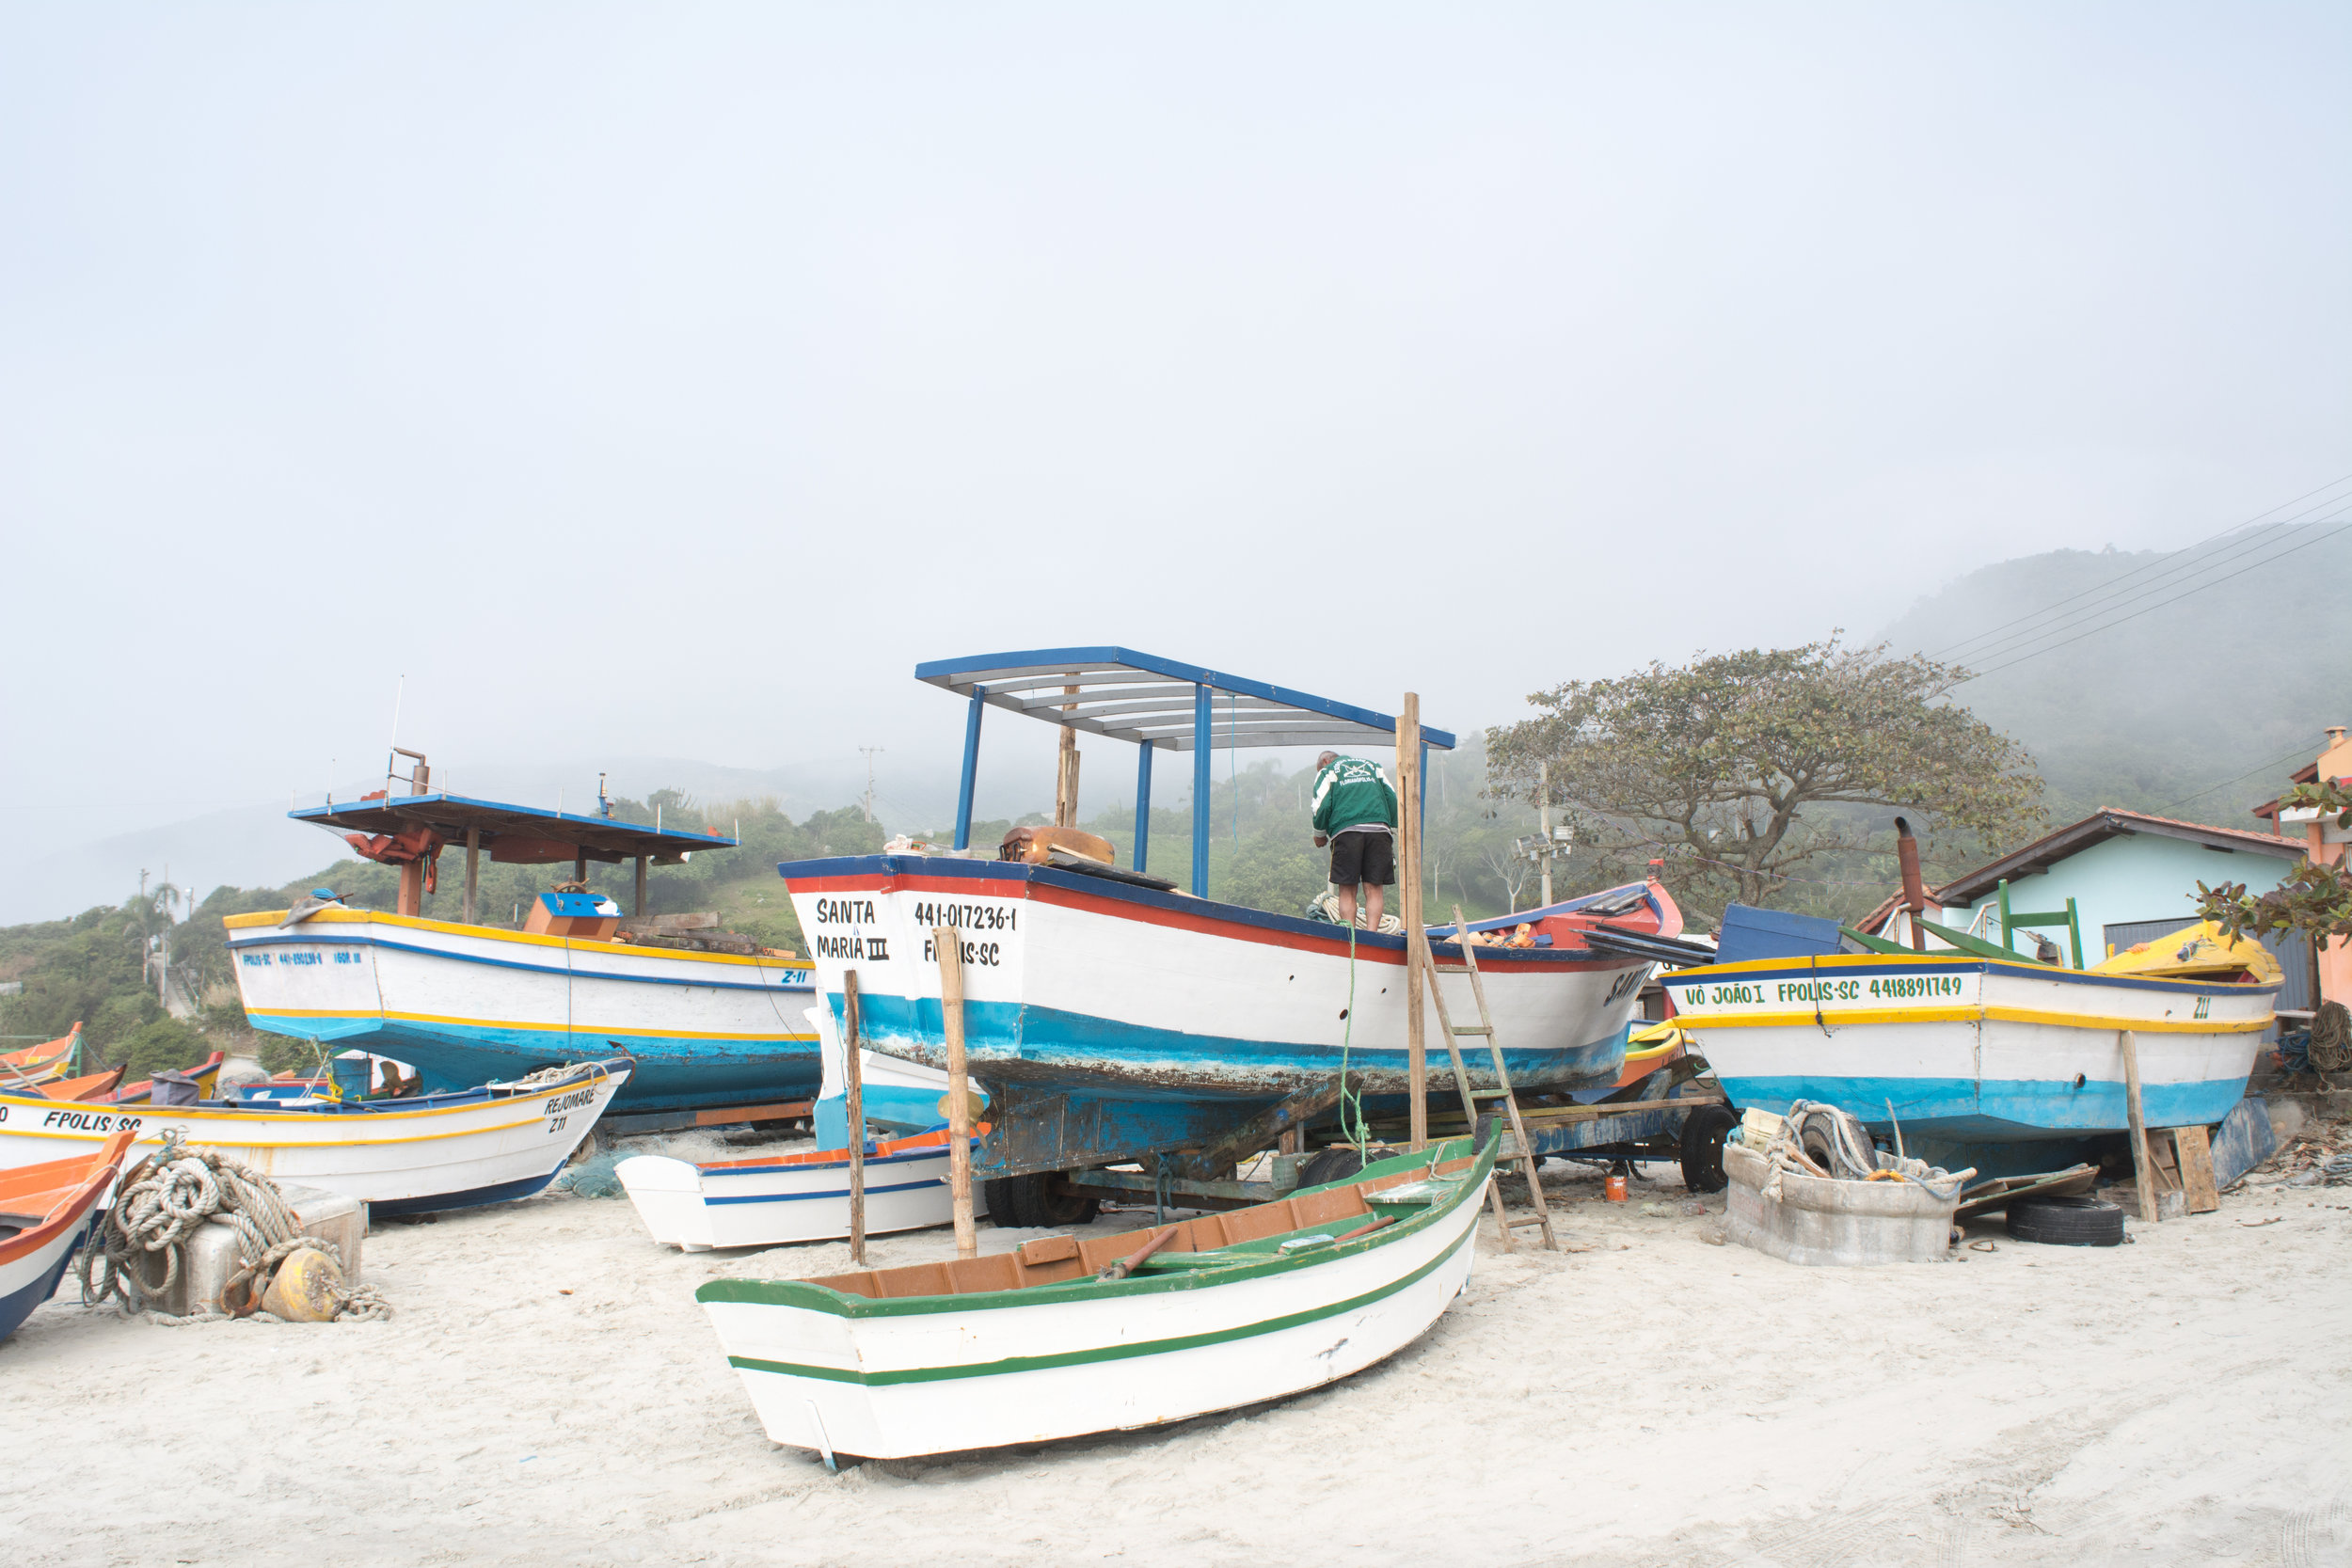 The fishing boats provided a burst of colour.